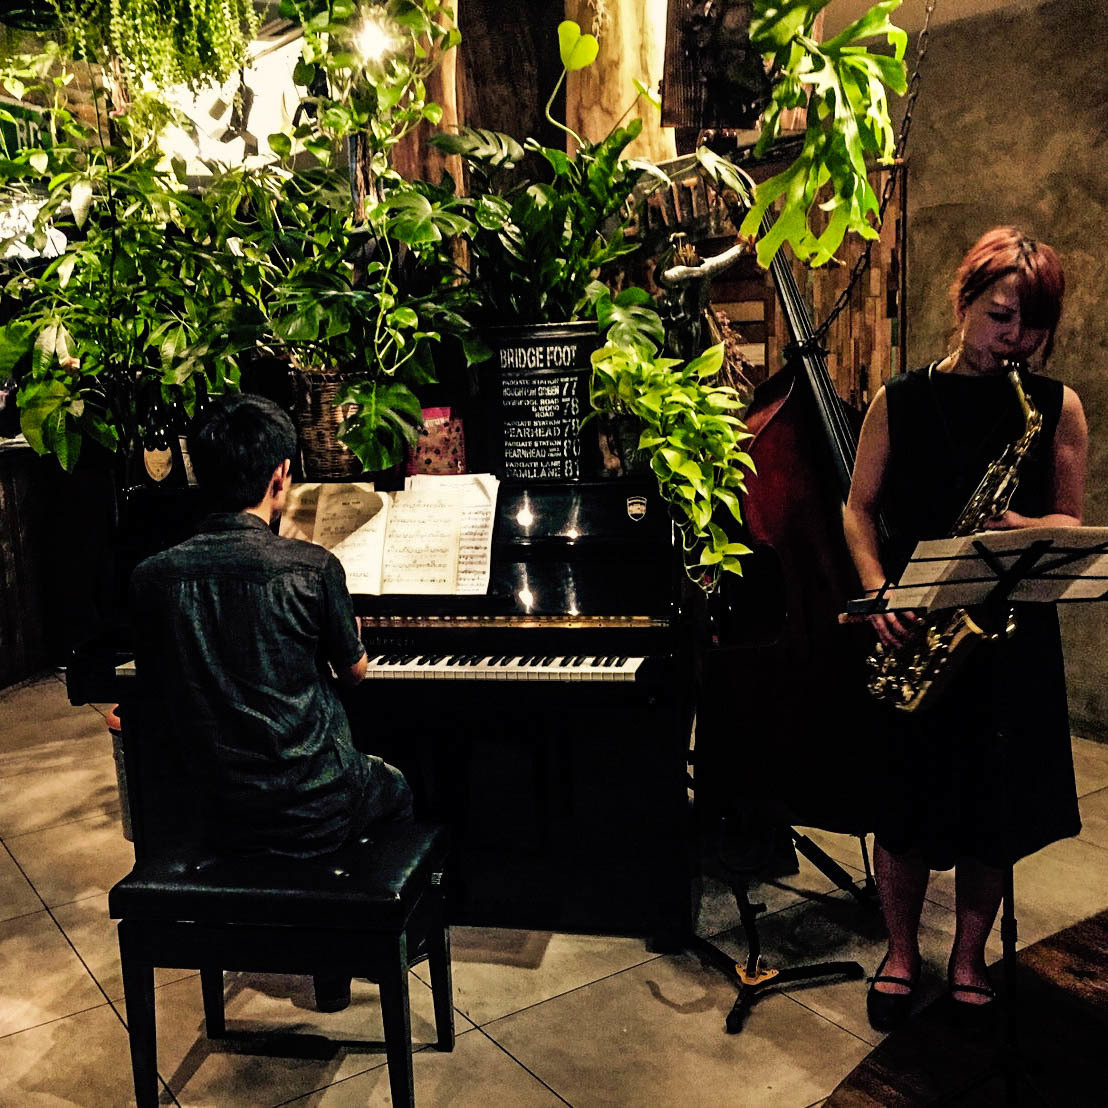 【Gentle live session ♪】 【Live performance by exclusive professional pianist & saxophonist】 The mellow session of piano and sax by a professional musician excites the atmosphere.A gentle live sound echoes in your heart.Jazz/Classic